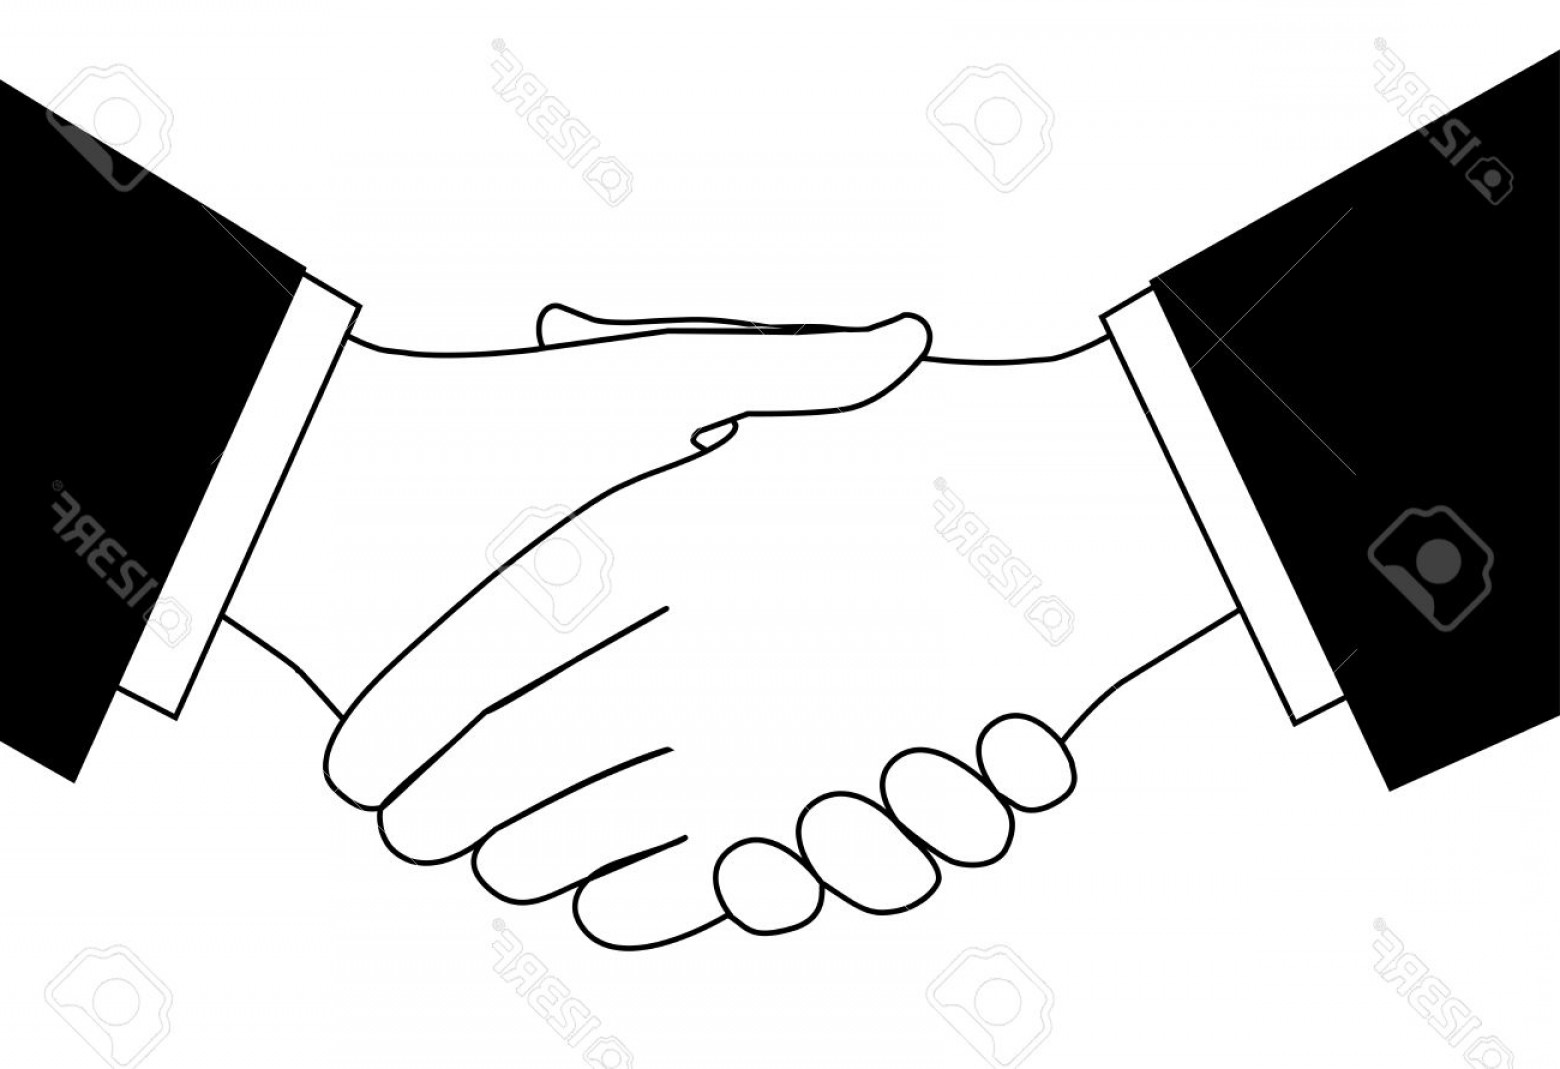 Handshake Clip Art Vector: Photohandshake Clipart Sketch Of Business People Shaking Hands To Meet Or Agree On A Deal